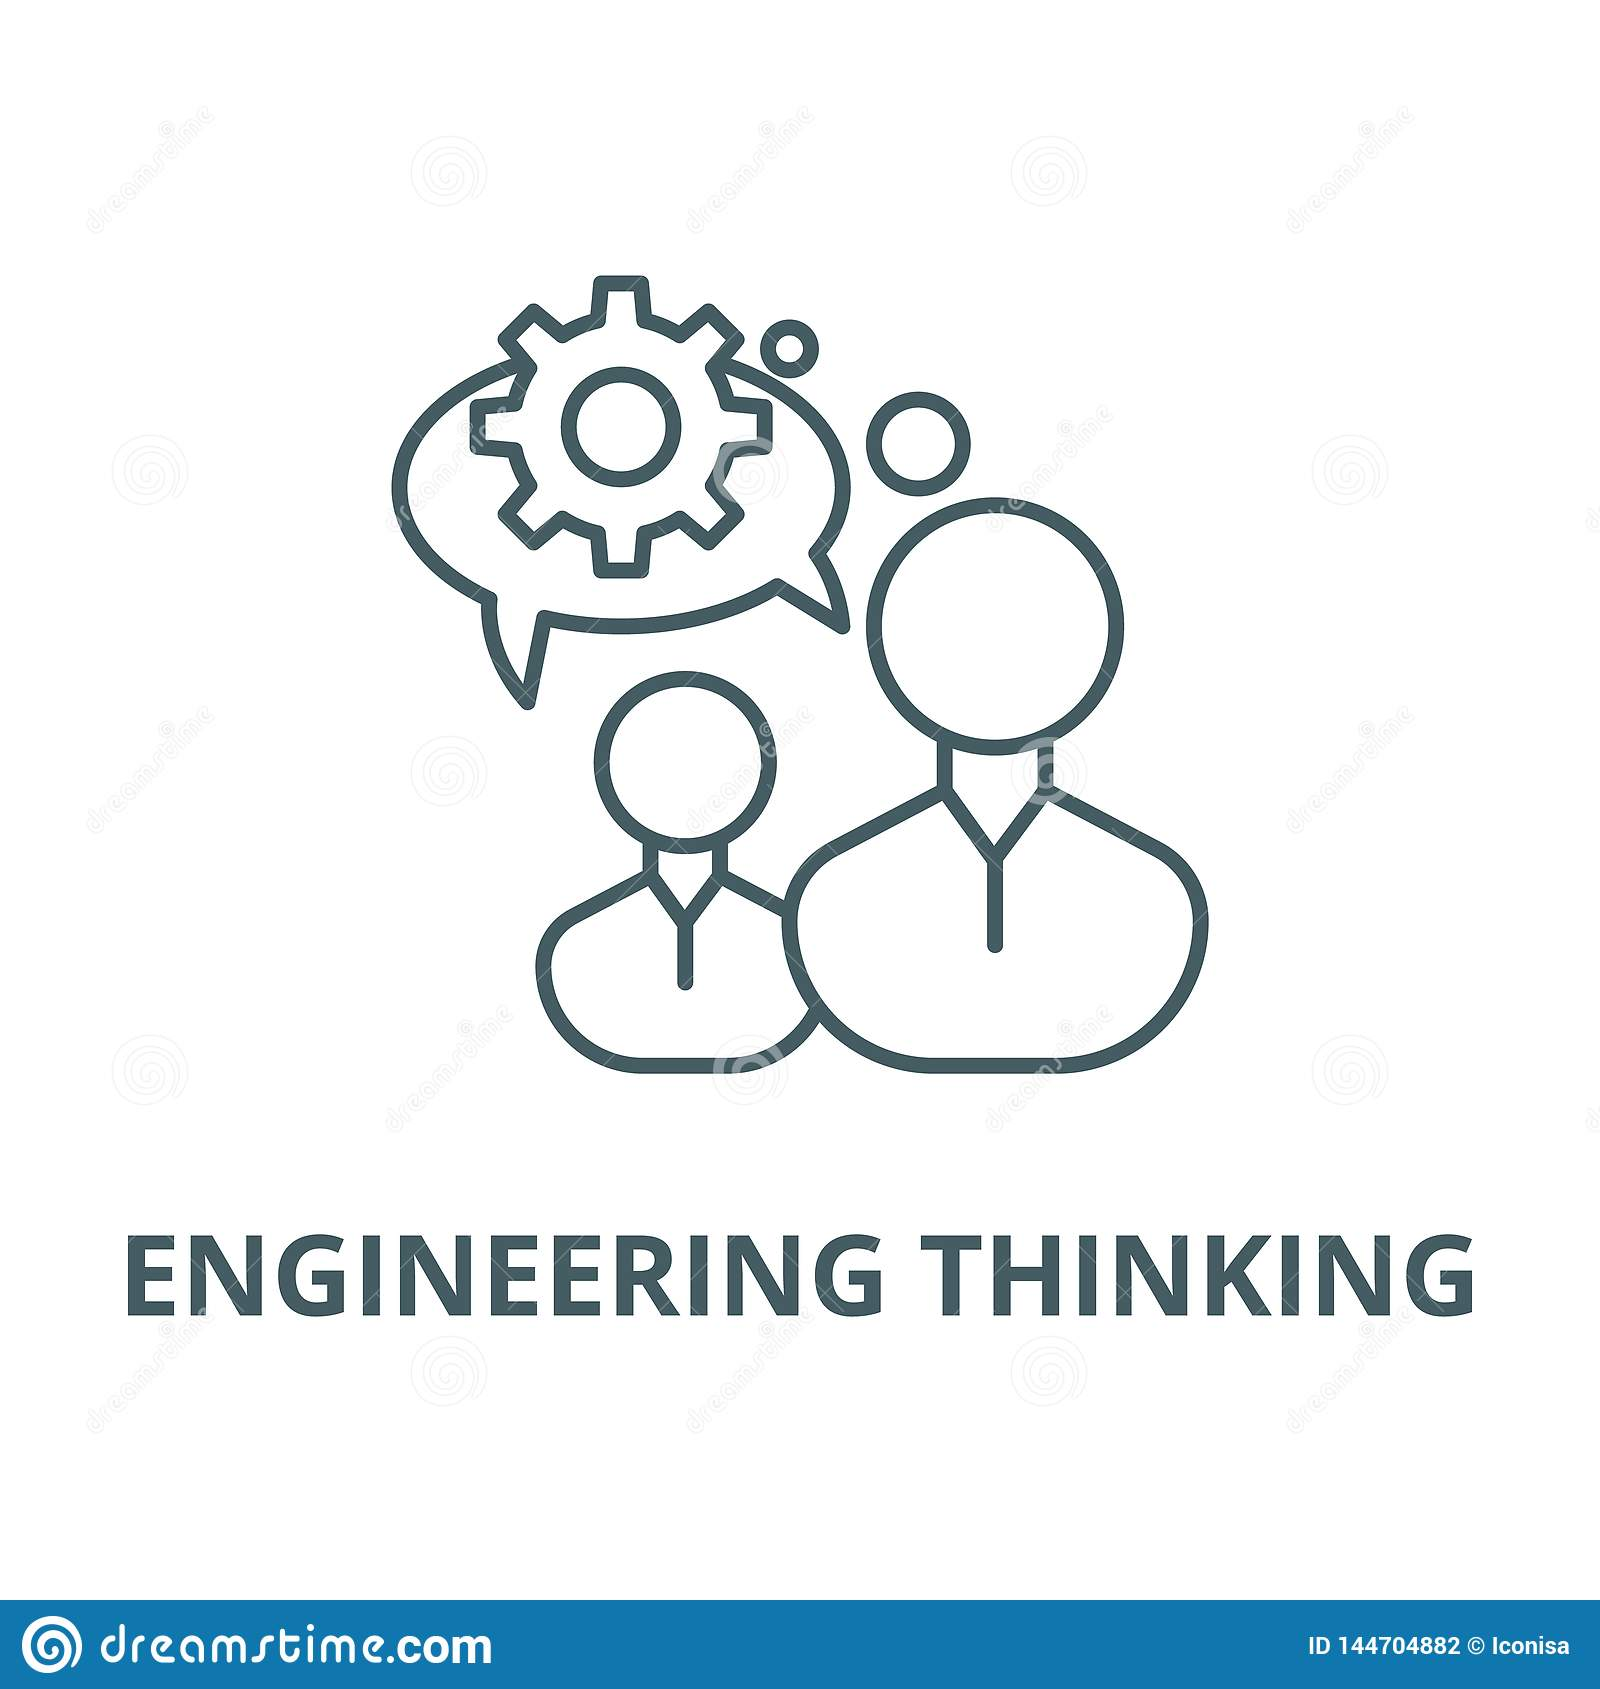 Engineering thinking line icon, vector. Engineering thinking outline sign, concept symbol, flat illustration